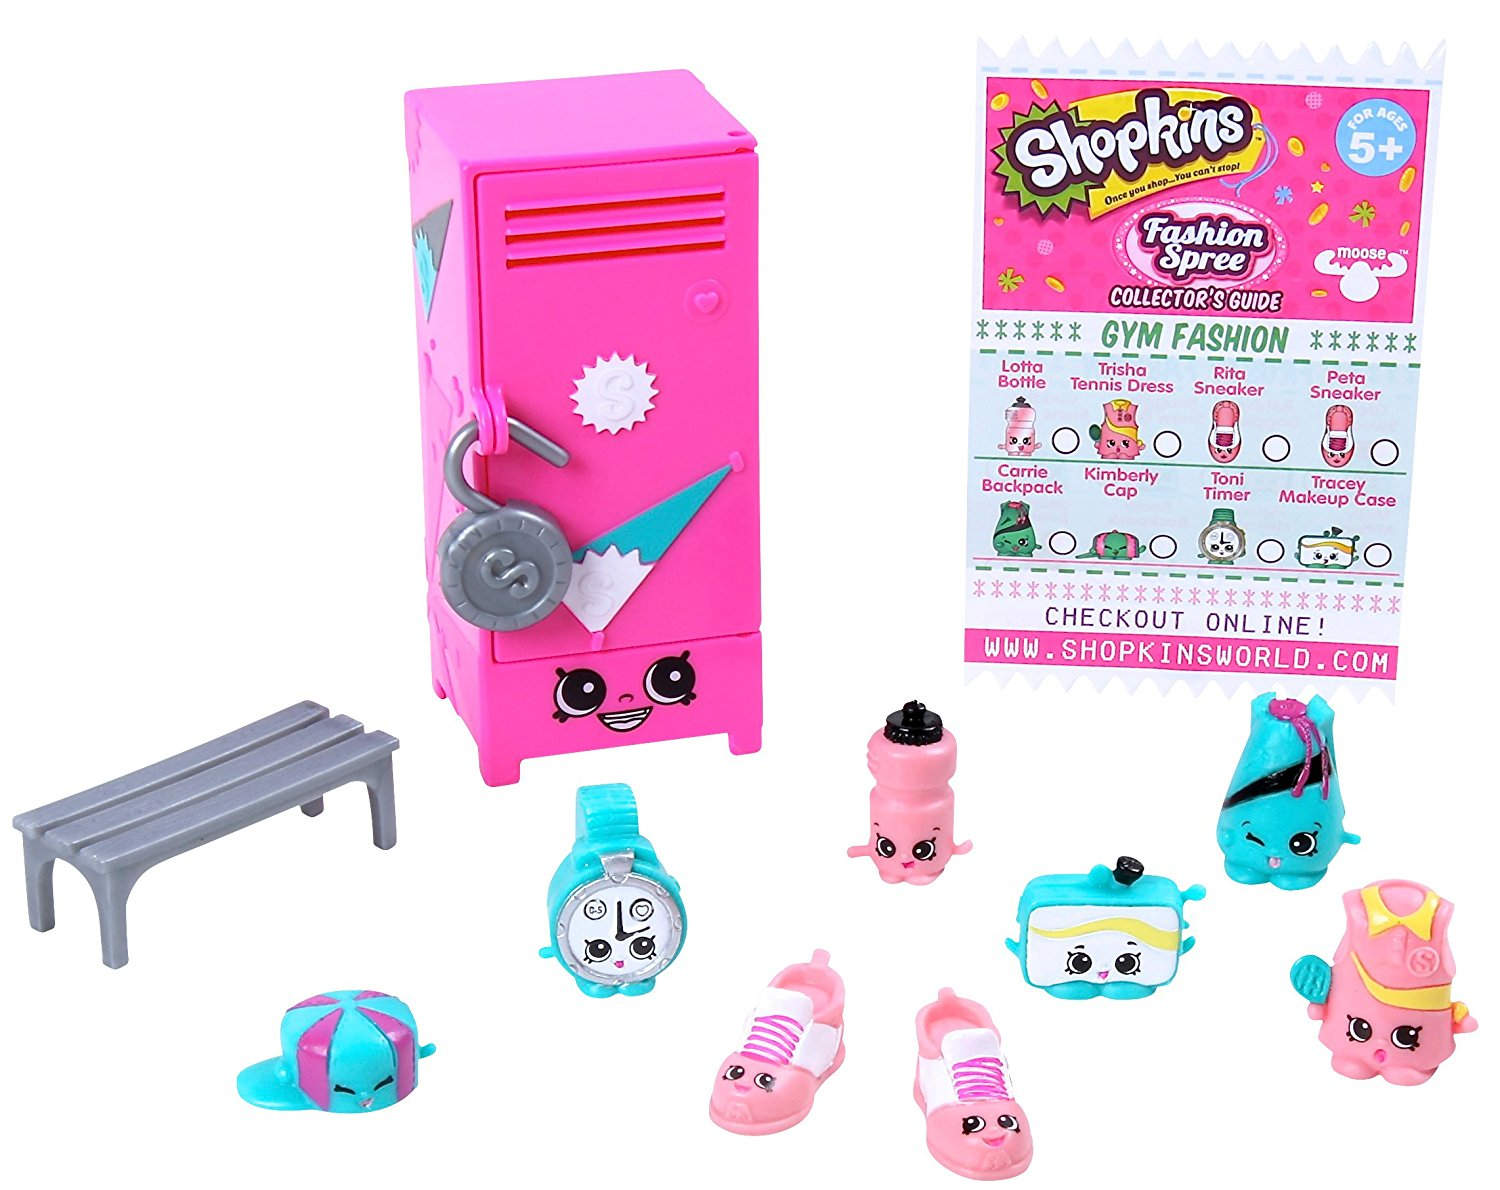 Shopkins Gym Fashion Collection